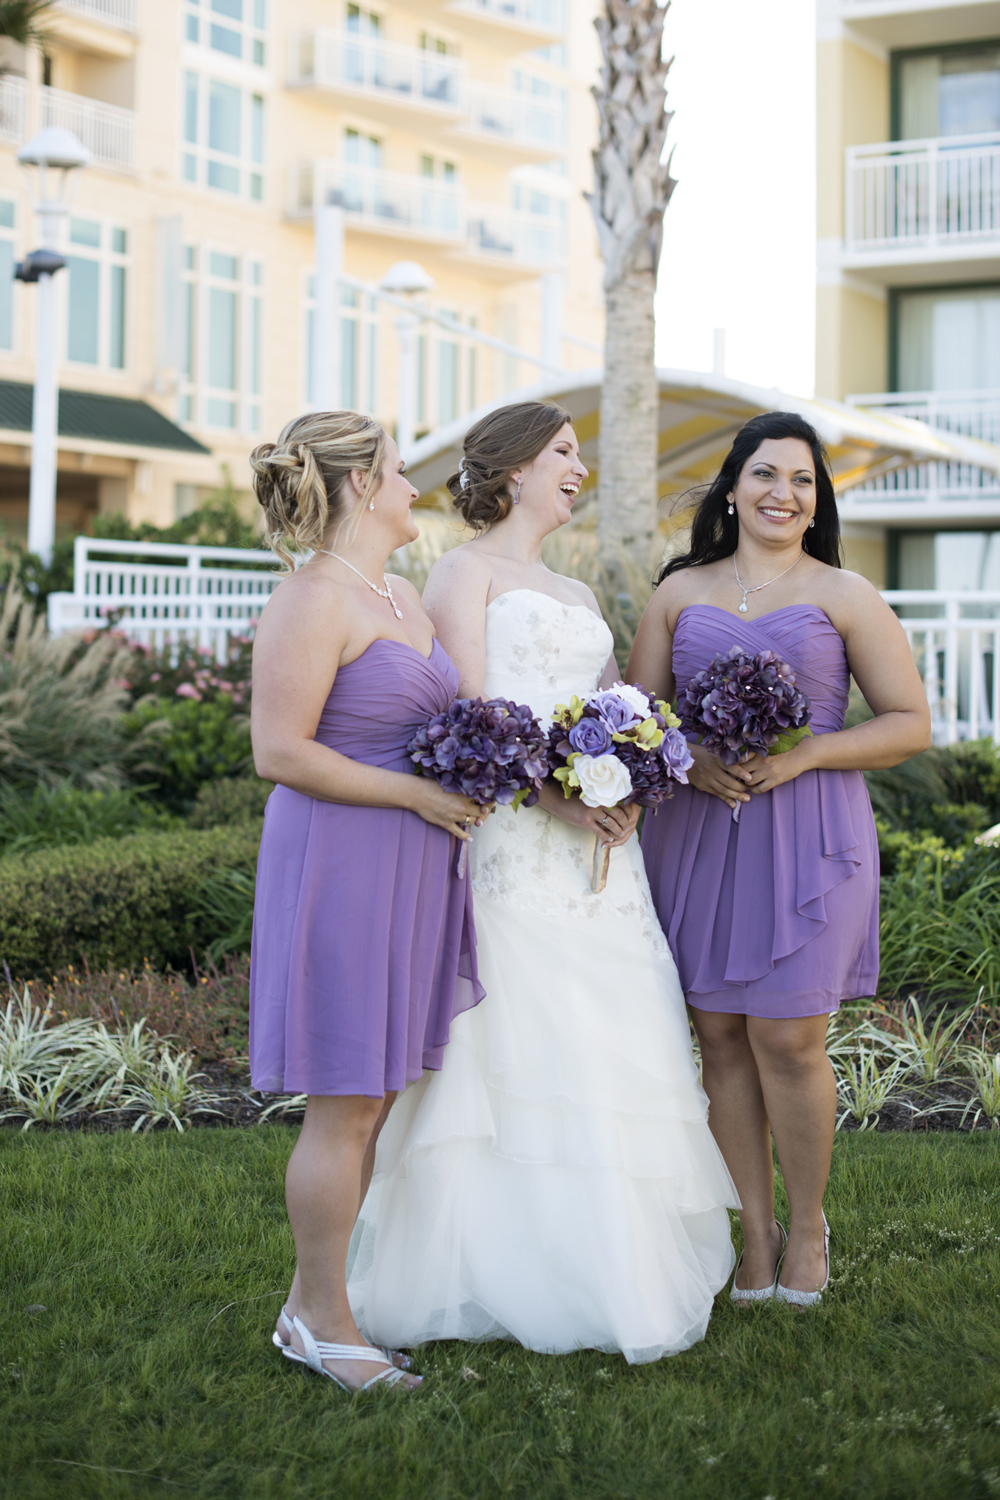 Bride and her bridesmaids in purple dresses with white flowers  | Fall hotel wedding in Virginia Beach